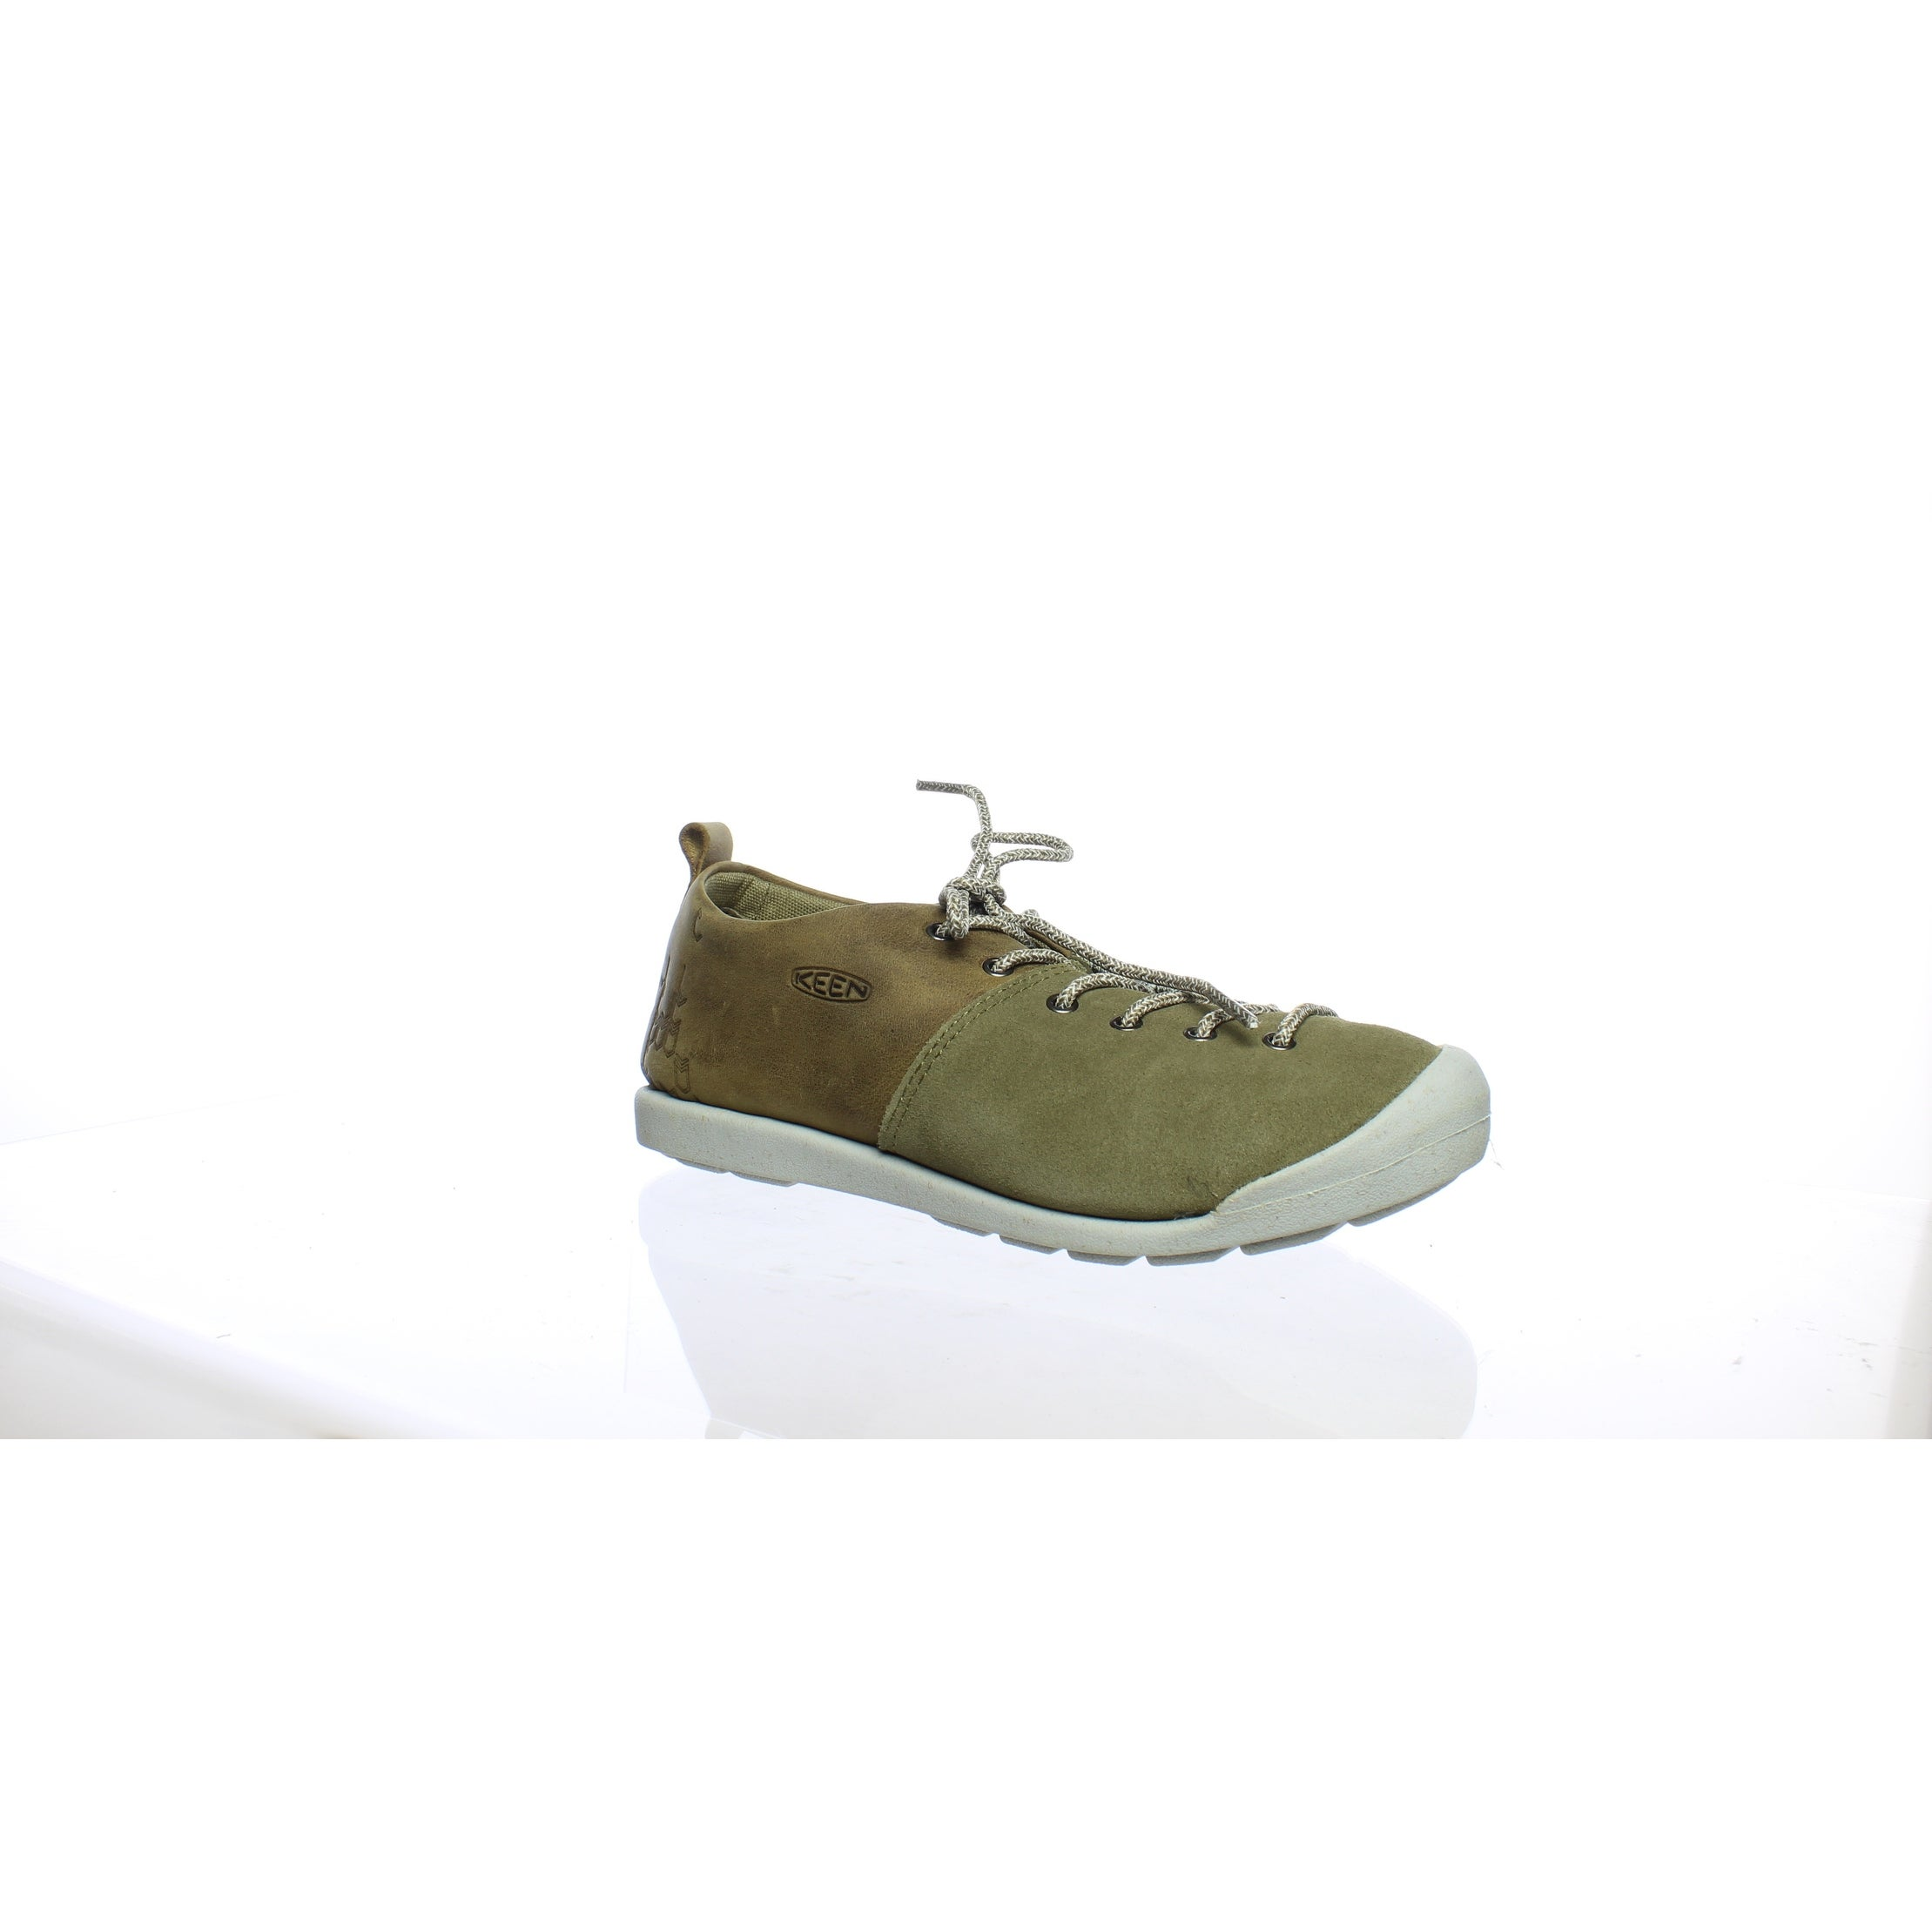 f083a147641c Buy Keen Women s Athletic Shoes Online at Overstock